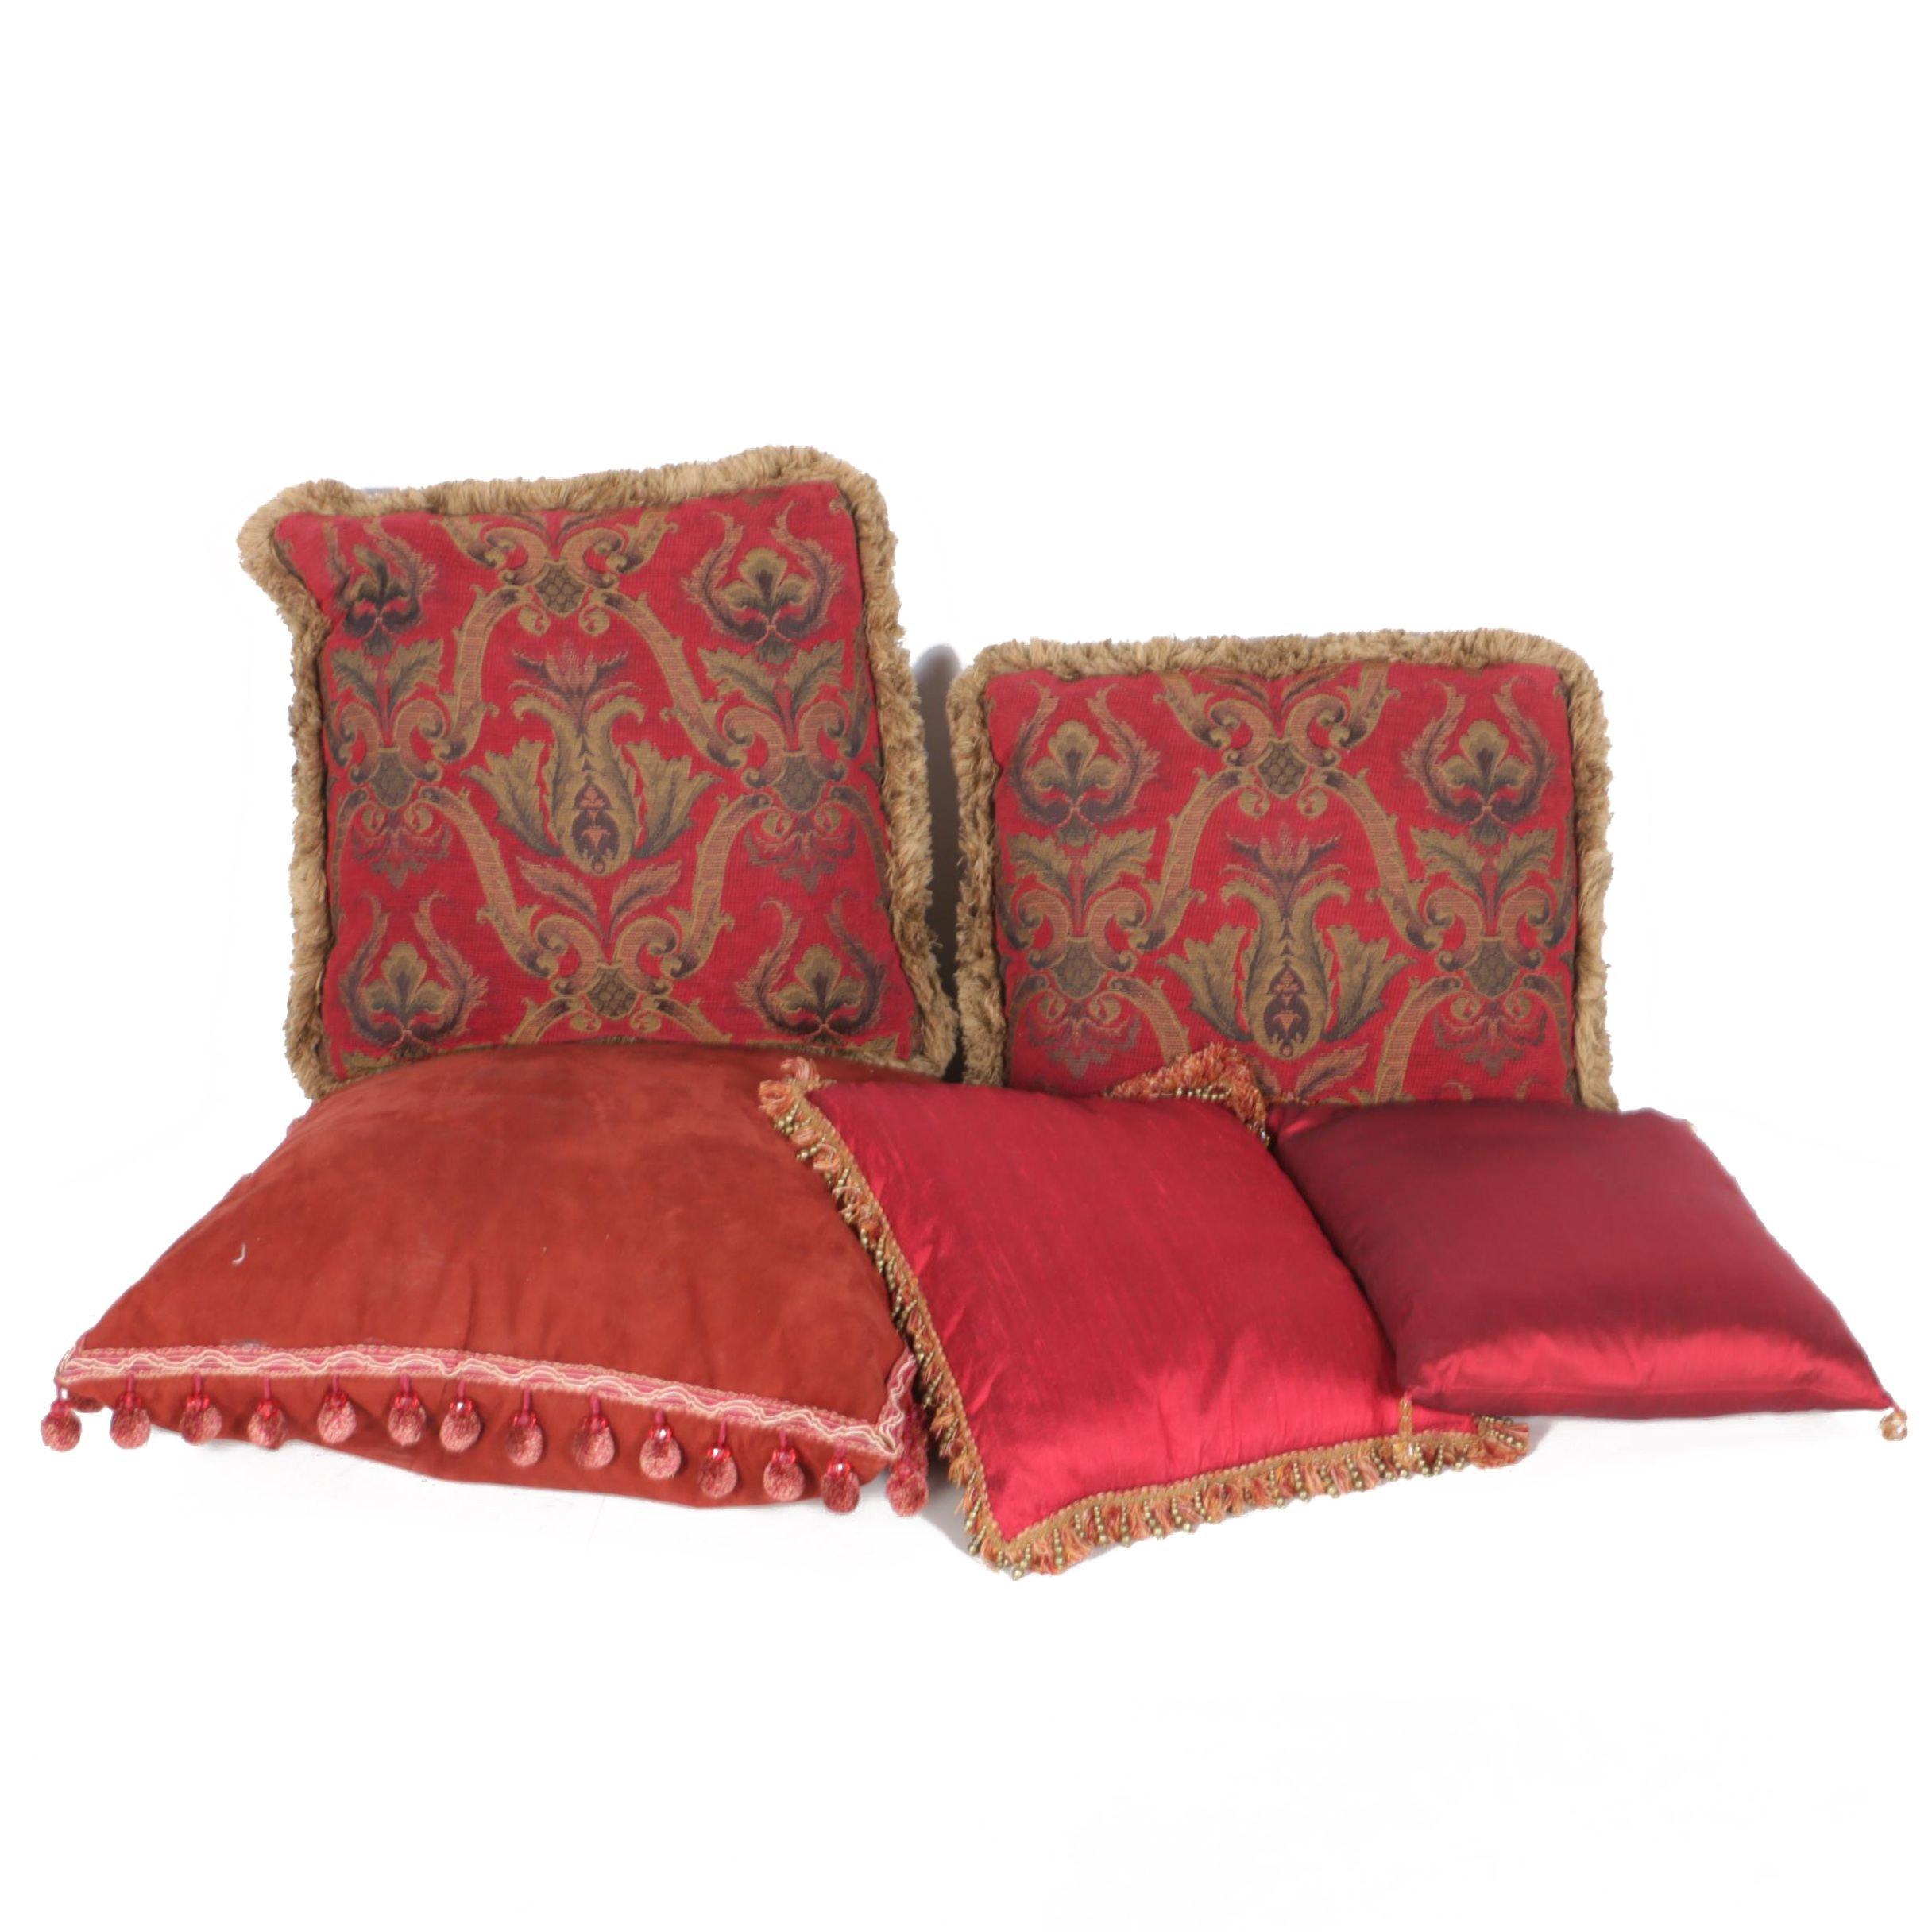 Red and Goldtone Accent Pillows with Fringe